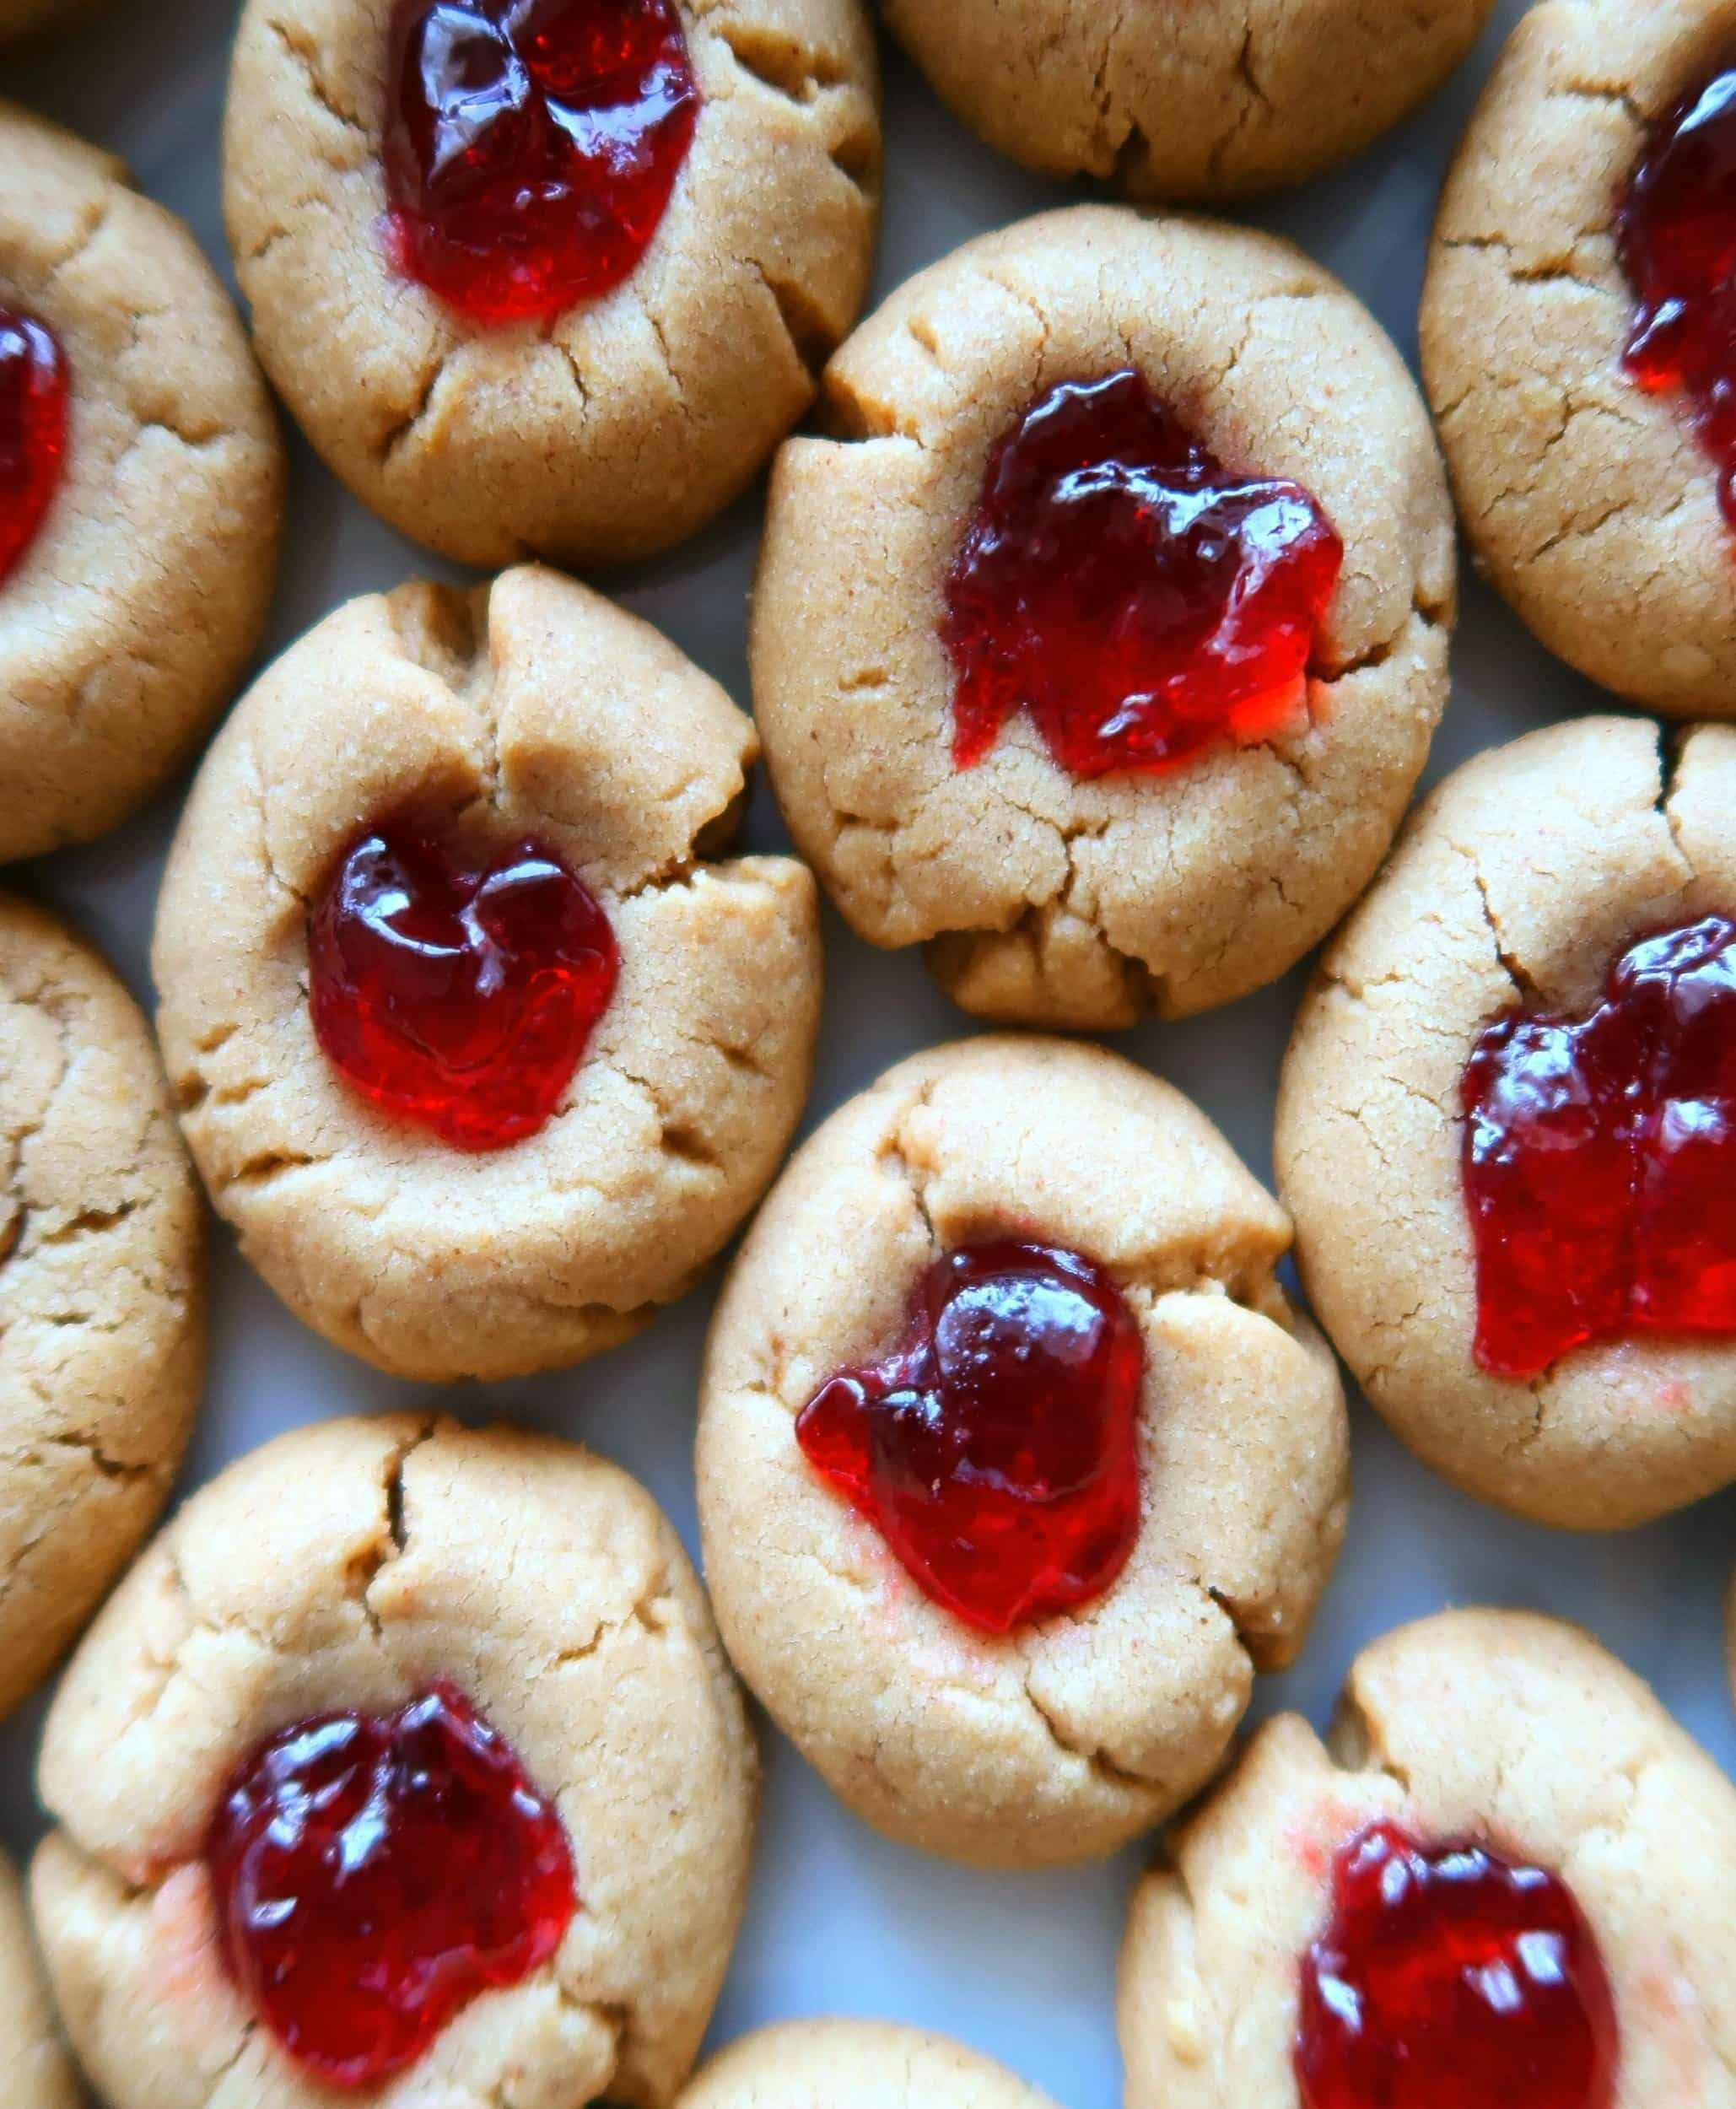 Peanut butter thumbprint cookies filled with jelly.